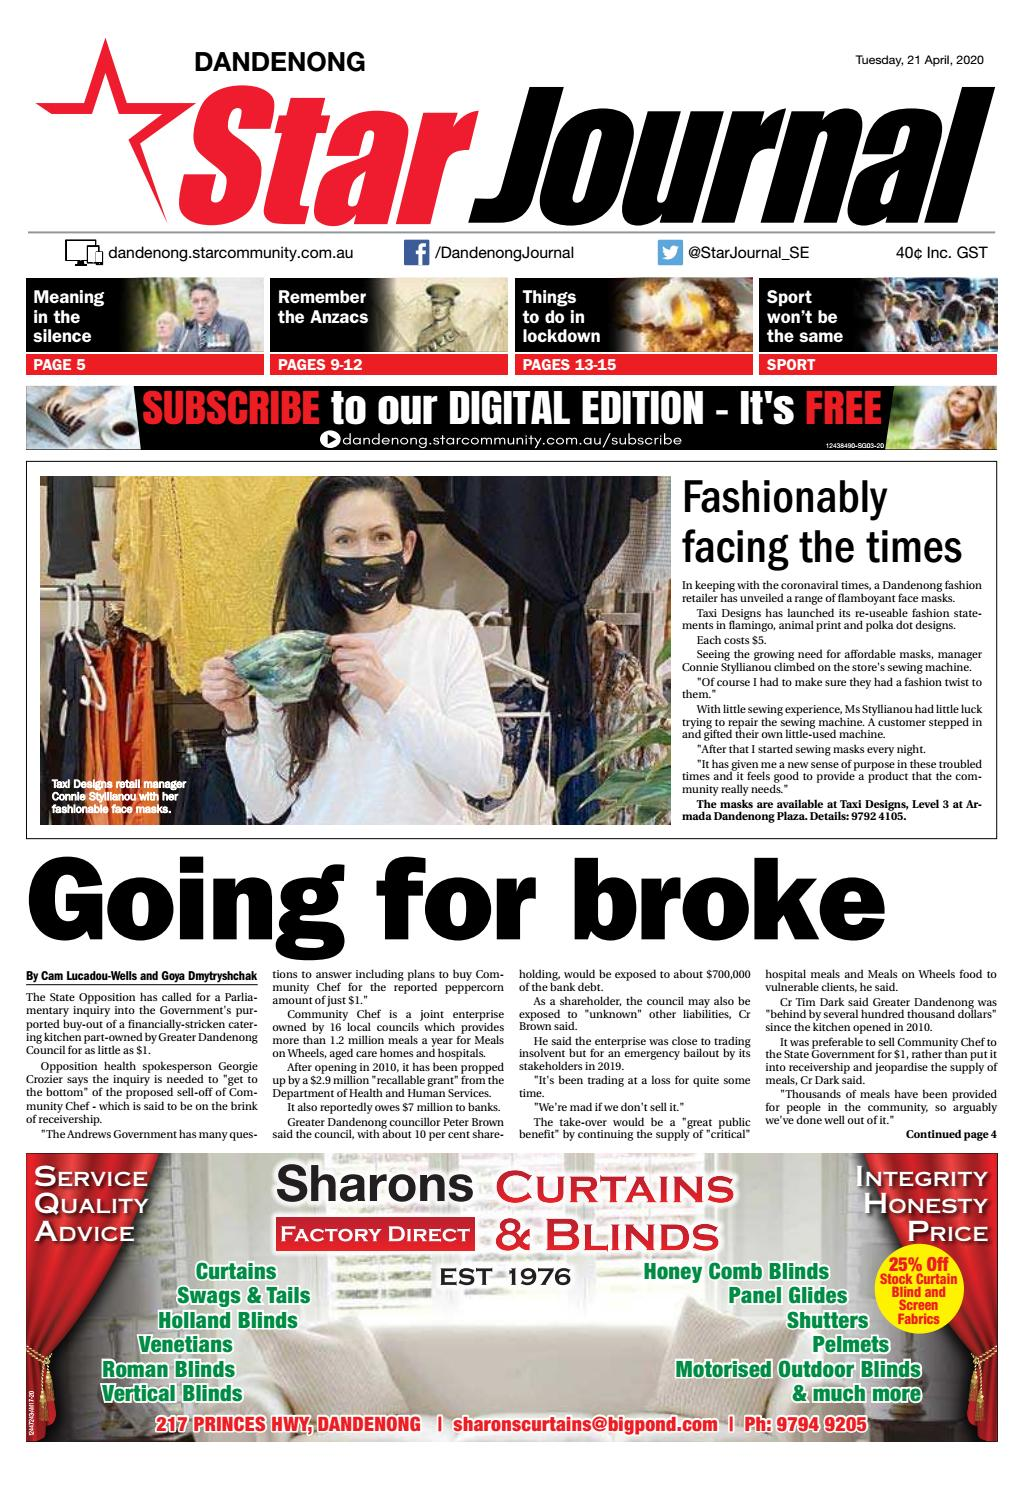 Dandenong Star Journal 21st April 2020 By Star News Group Issuu